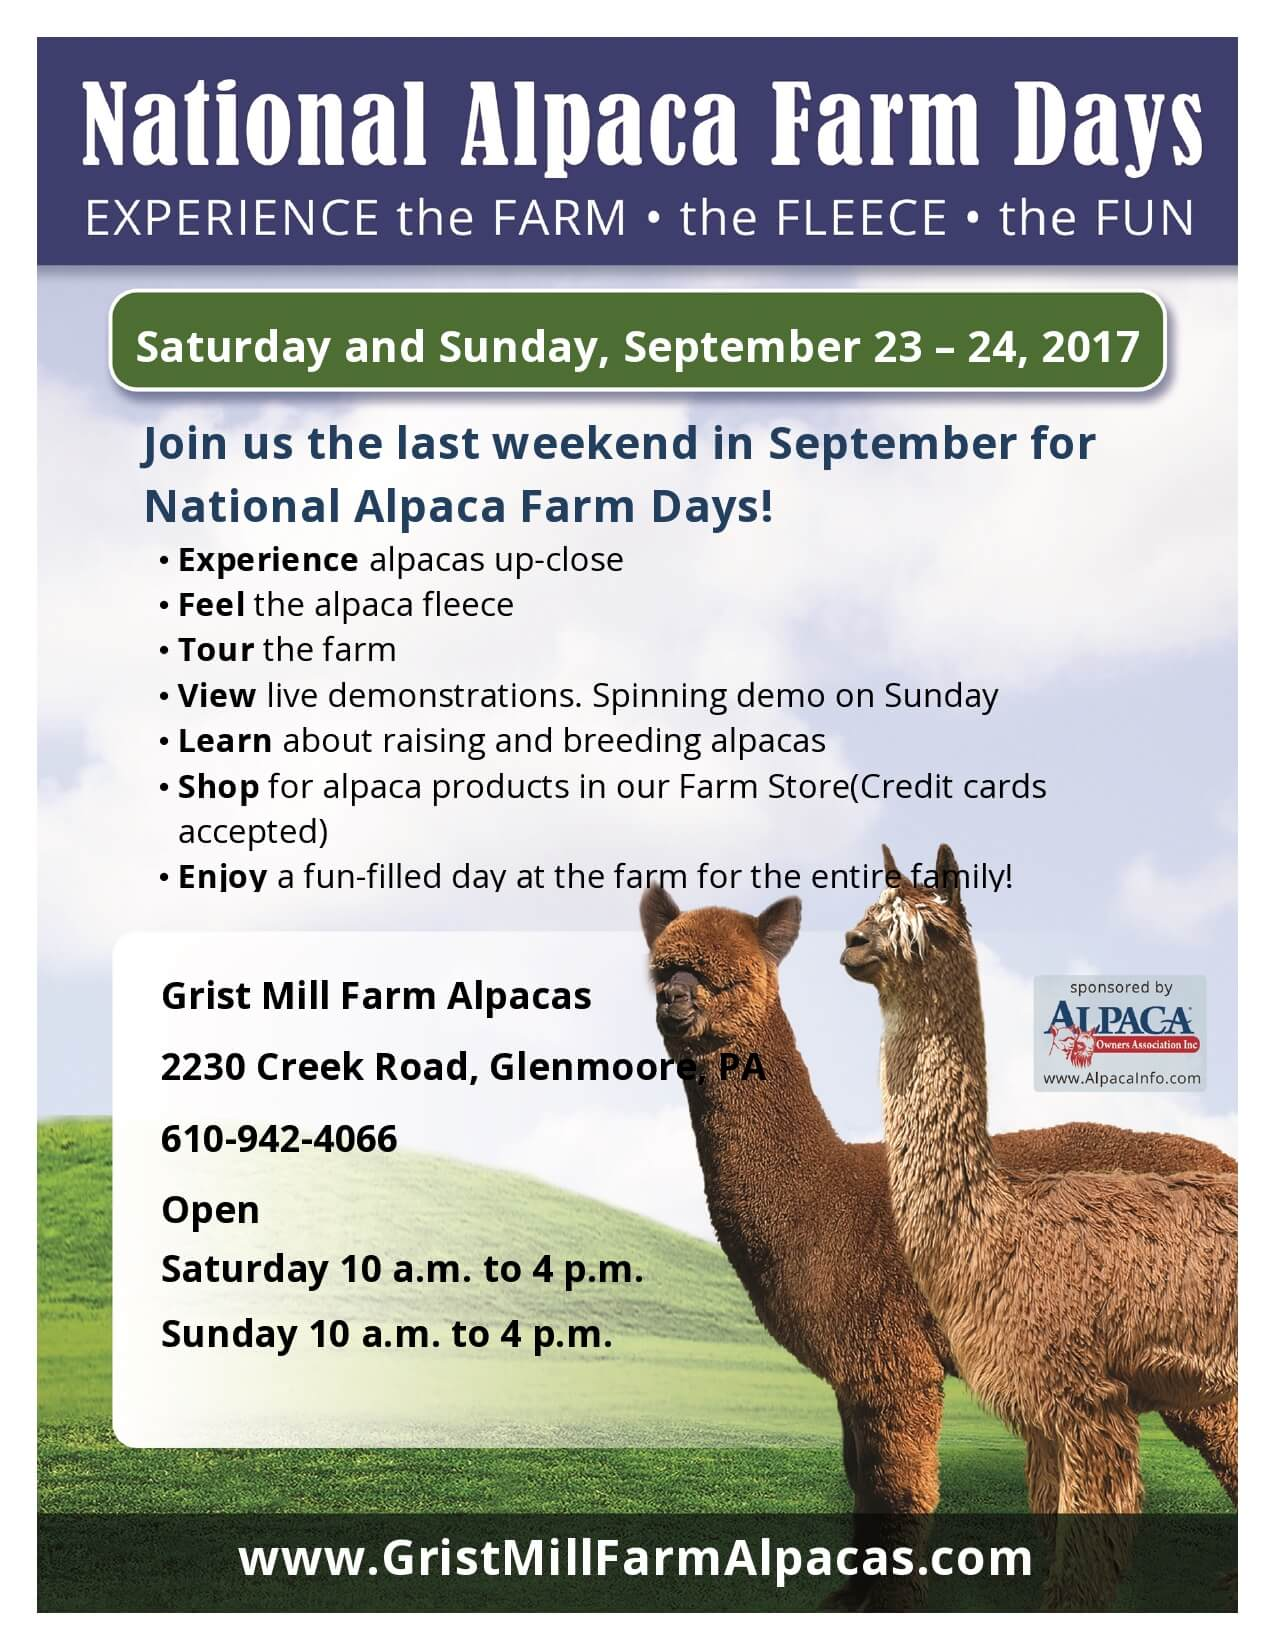 National Alpaca Farm Days at Grist Mill Farm Alpacas